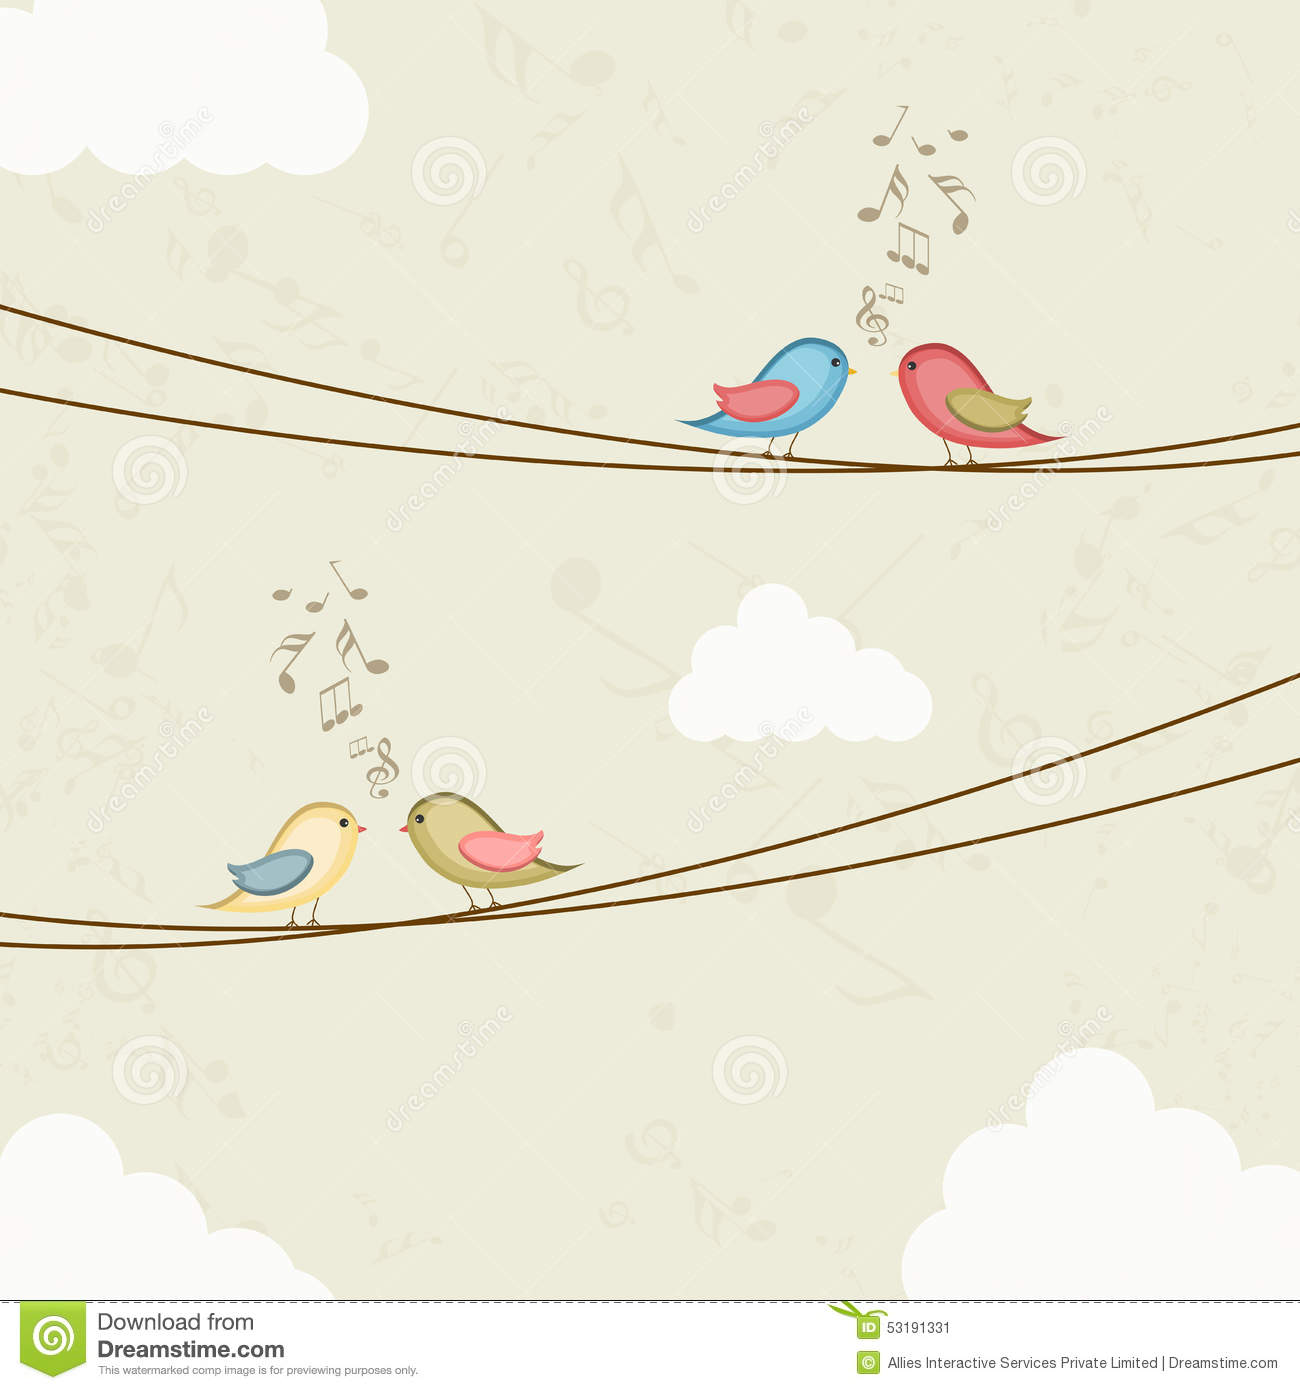 Tune Up Prices >> Cute Bird Couples With Musical Notes. Stock Illustration - Image: 53191331